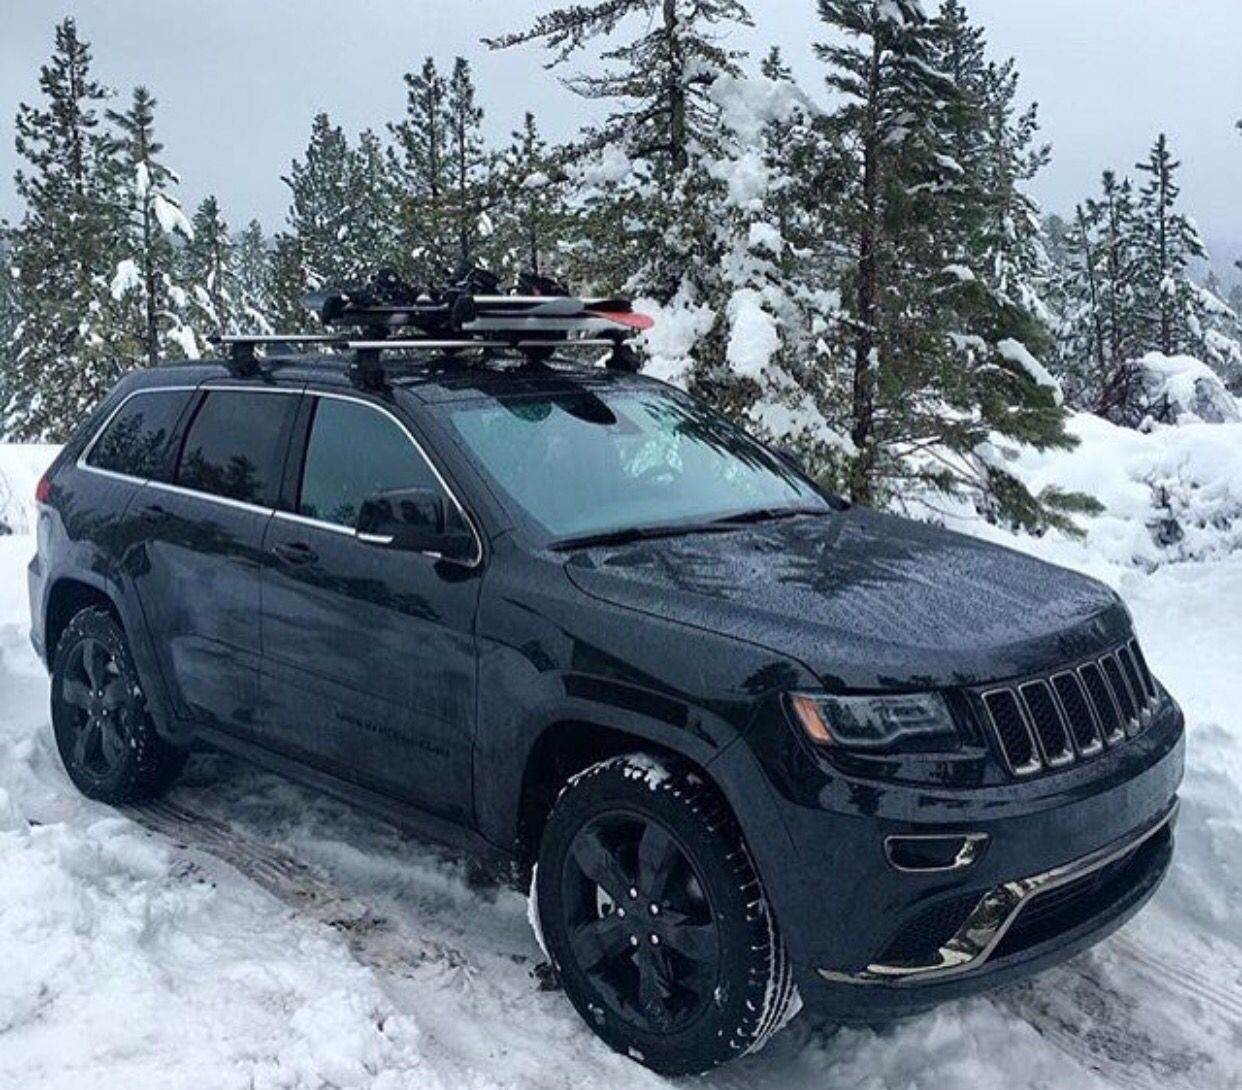 Best 25 jeep grand cherokee ideas on pinterest jeep cherokee white jeep grand cherokee and jeep grand cherokee srt